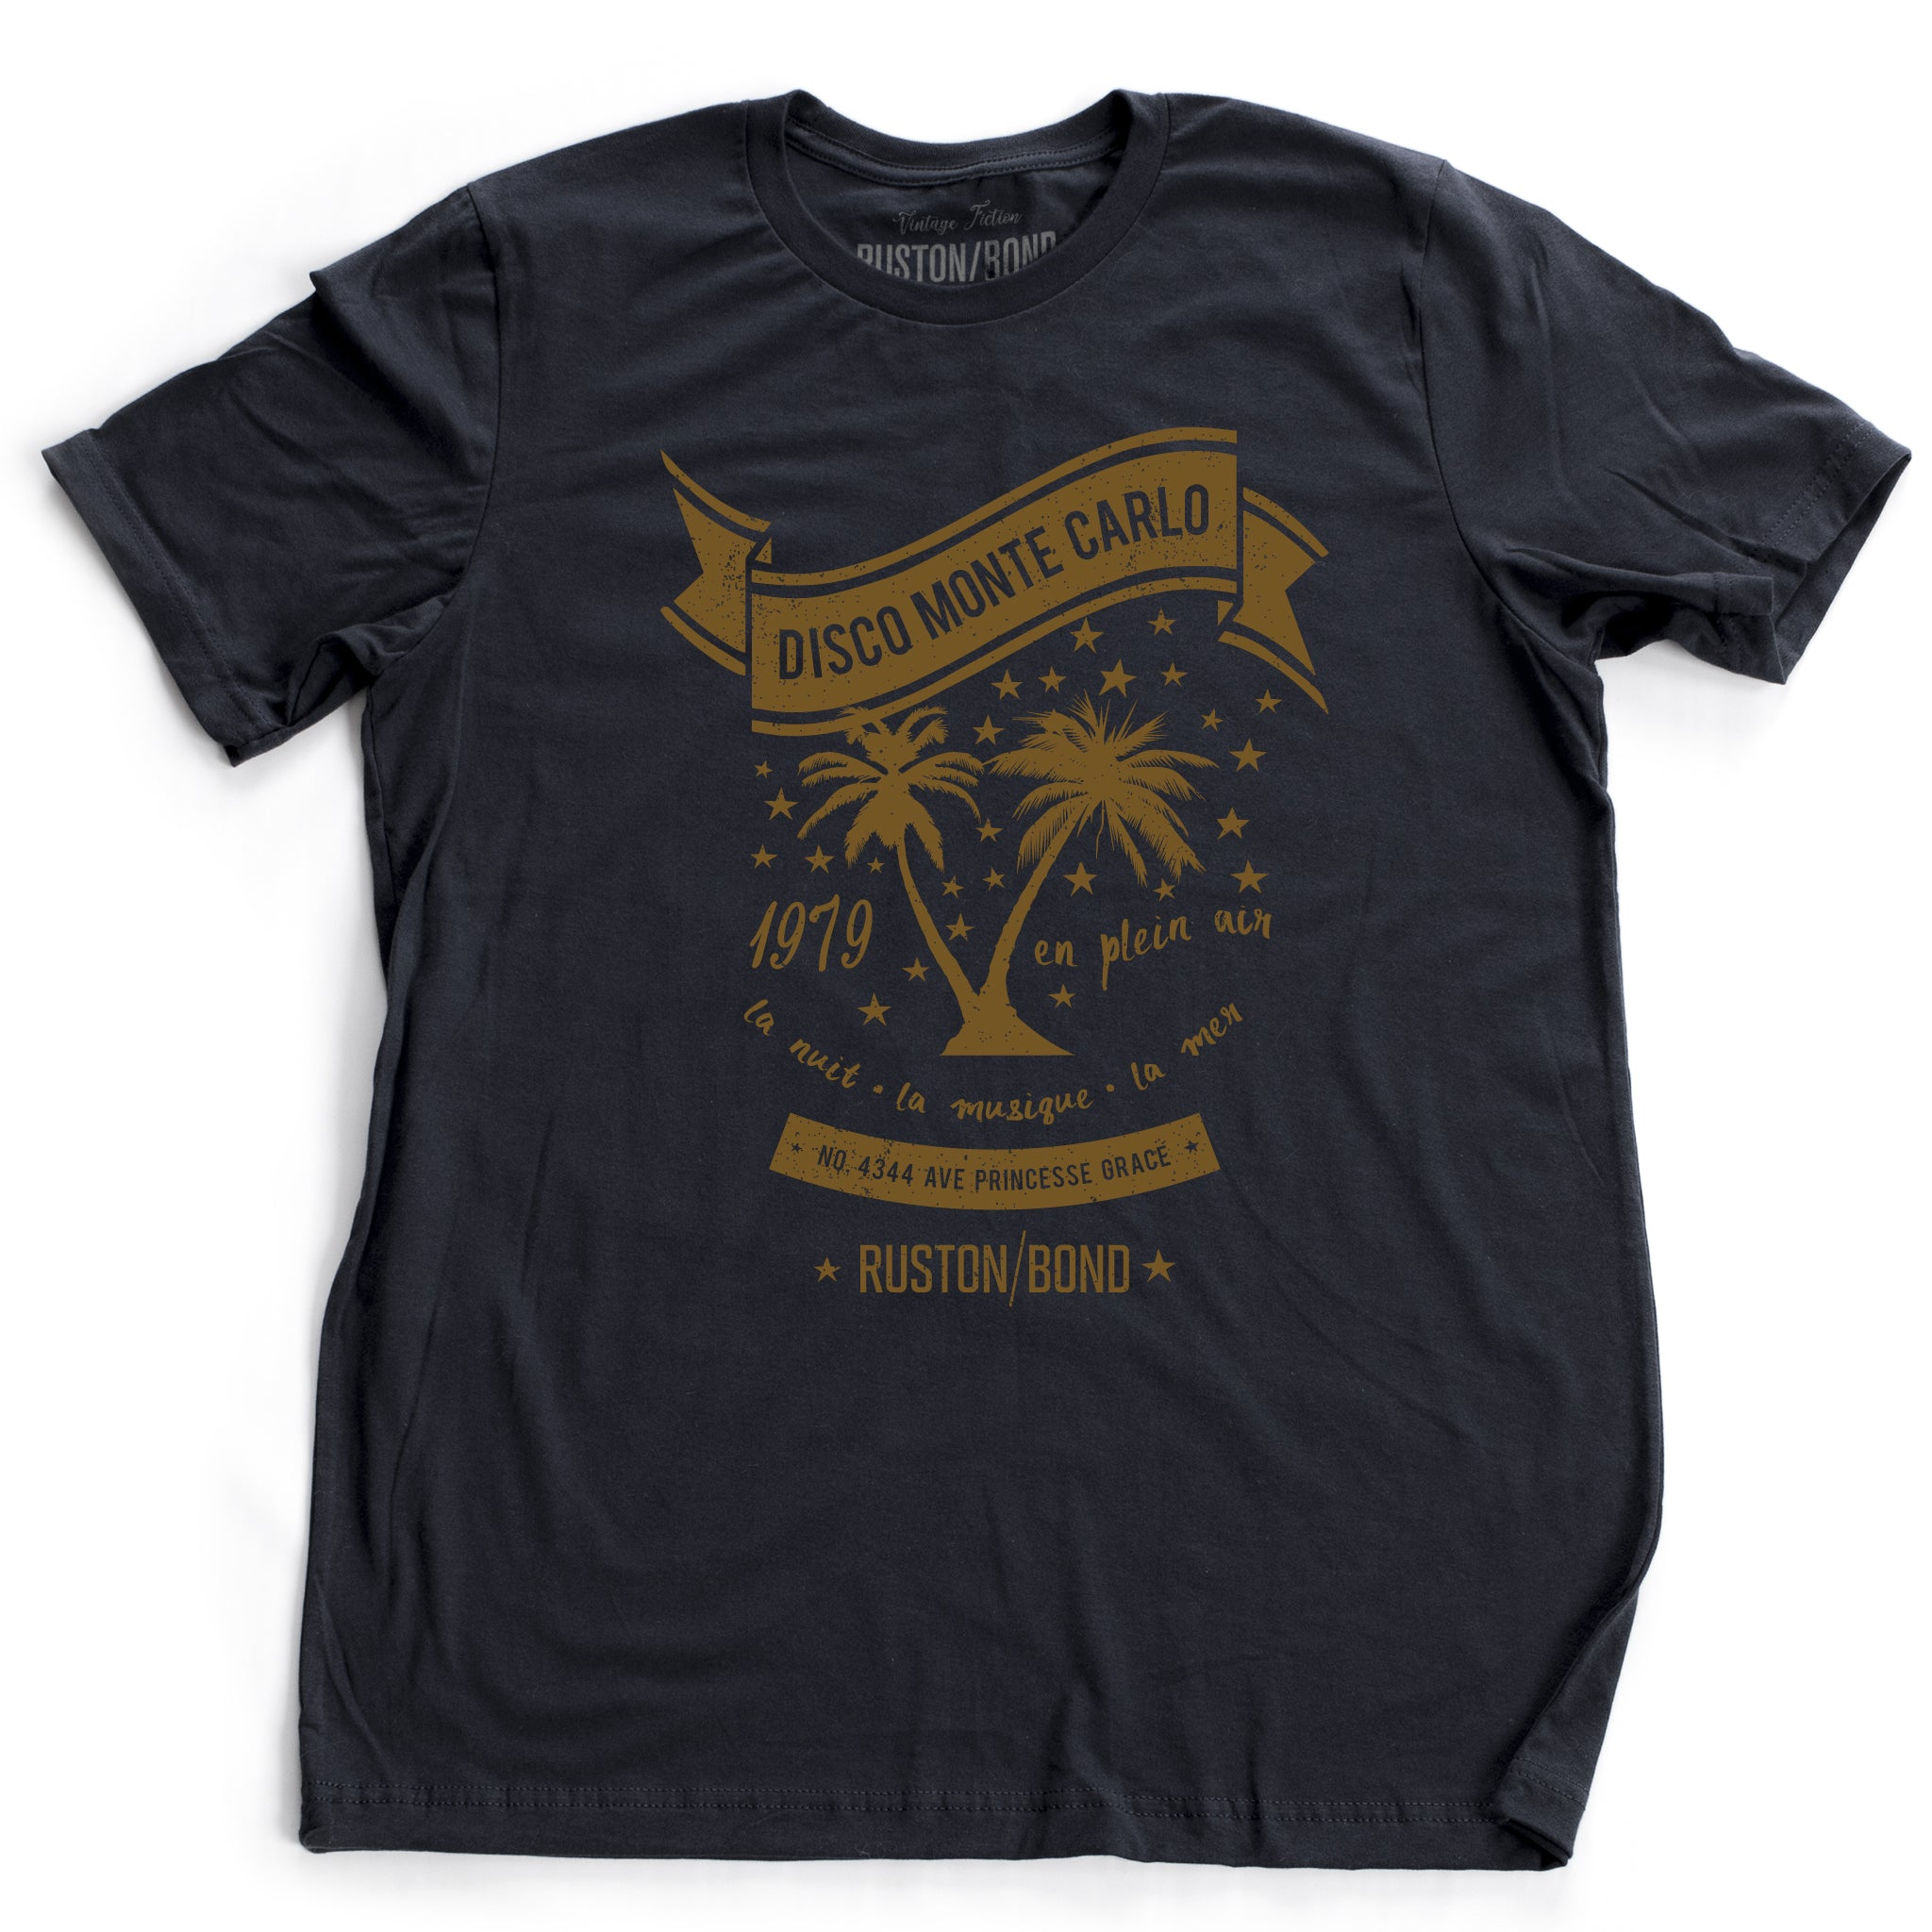 A retro, vintage-inspired t-shirt in navy blue, featuring palm trees against a starry sky, promoting a fictional Monte Carlo discotheque from the 1970s and 80s. By fashion brand Ruston/Bond, from wolfsaint.net